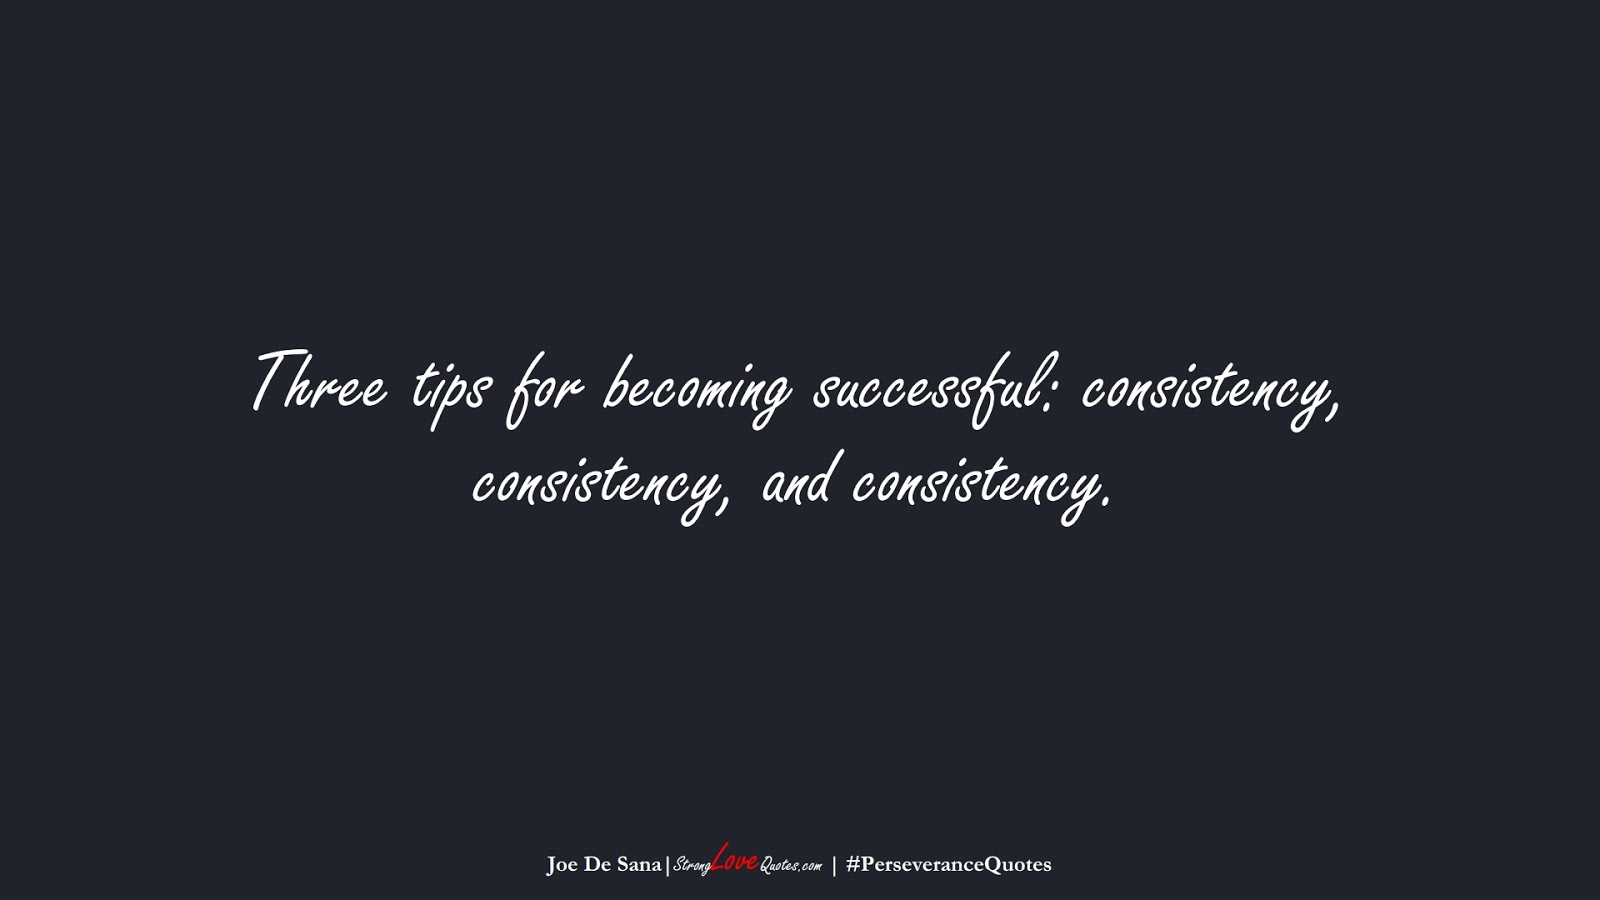 Three tips for becoming successful: consistency, consistency, and consistency. (Joe De Sana);  #PerseveranceQuotes